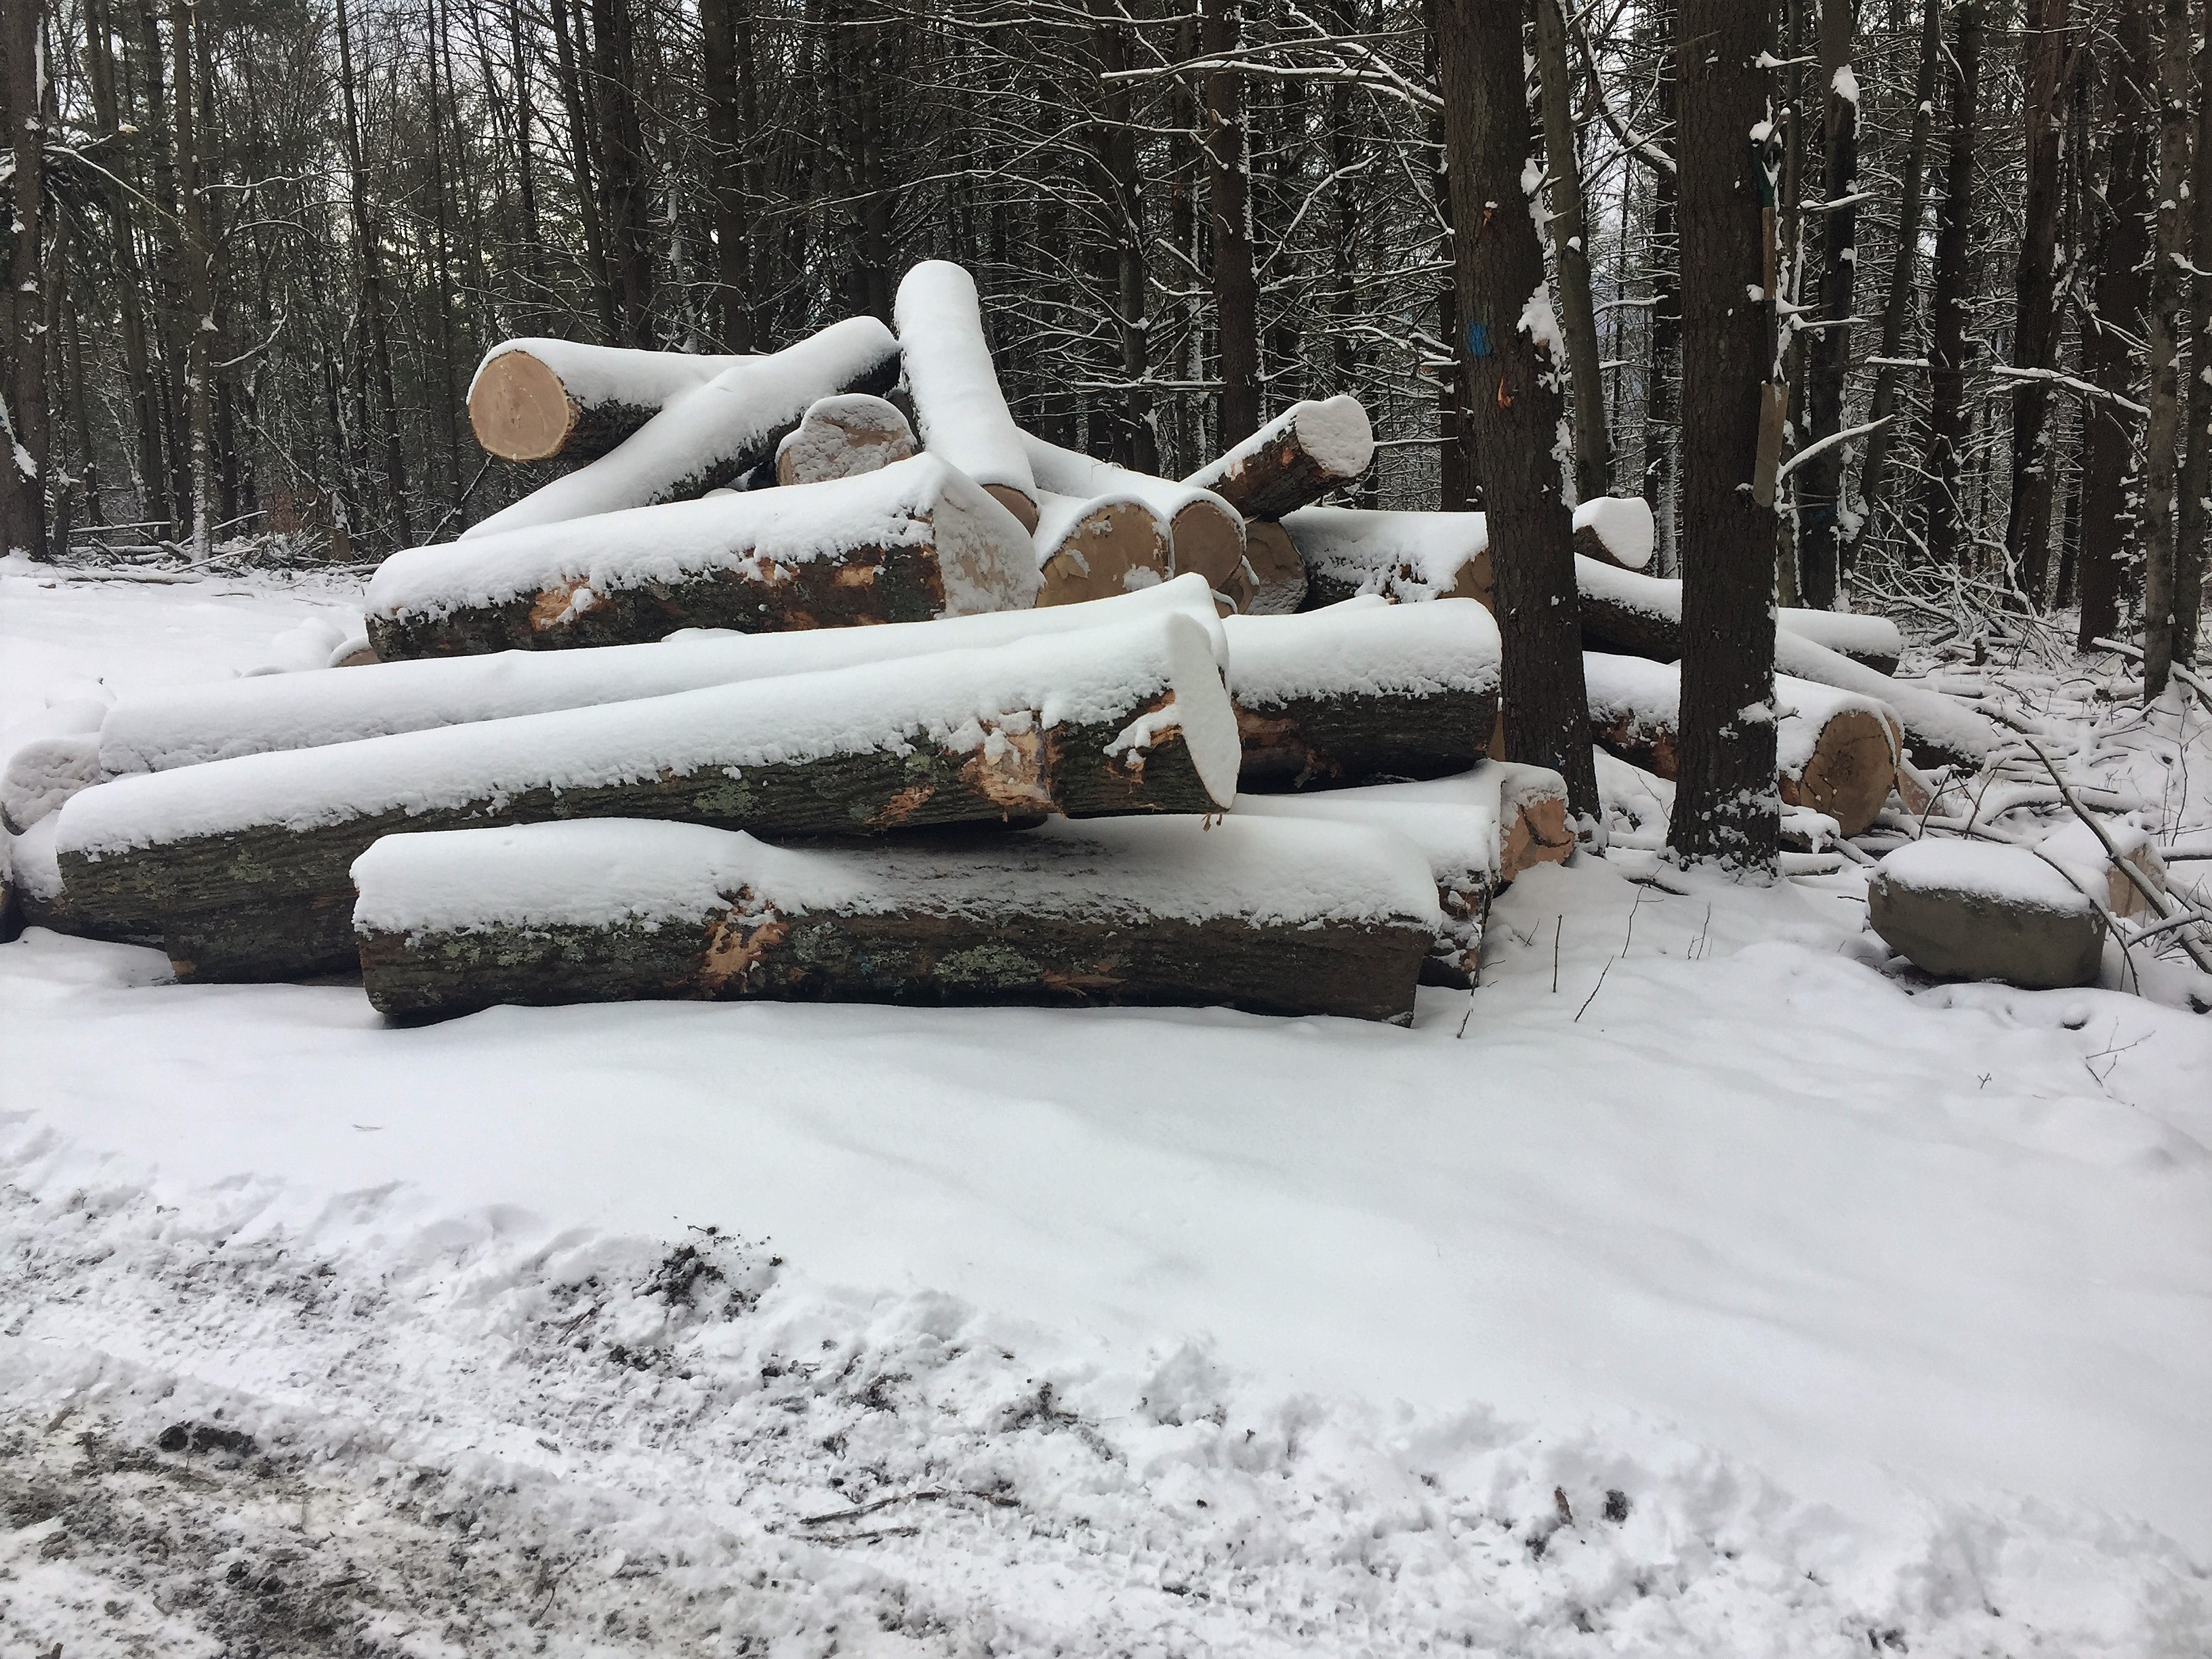 Pile of snowy logs